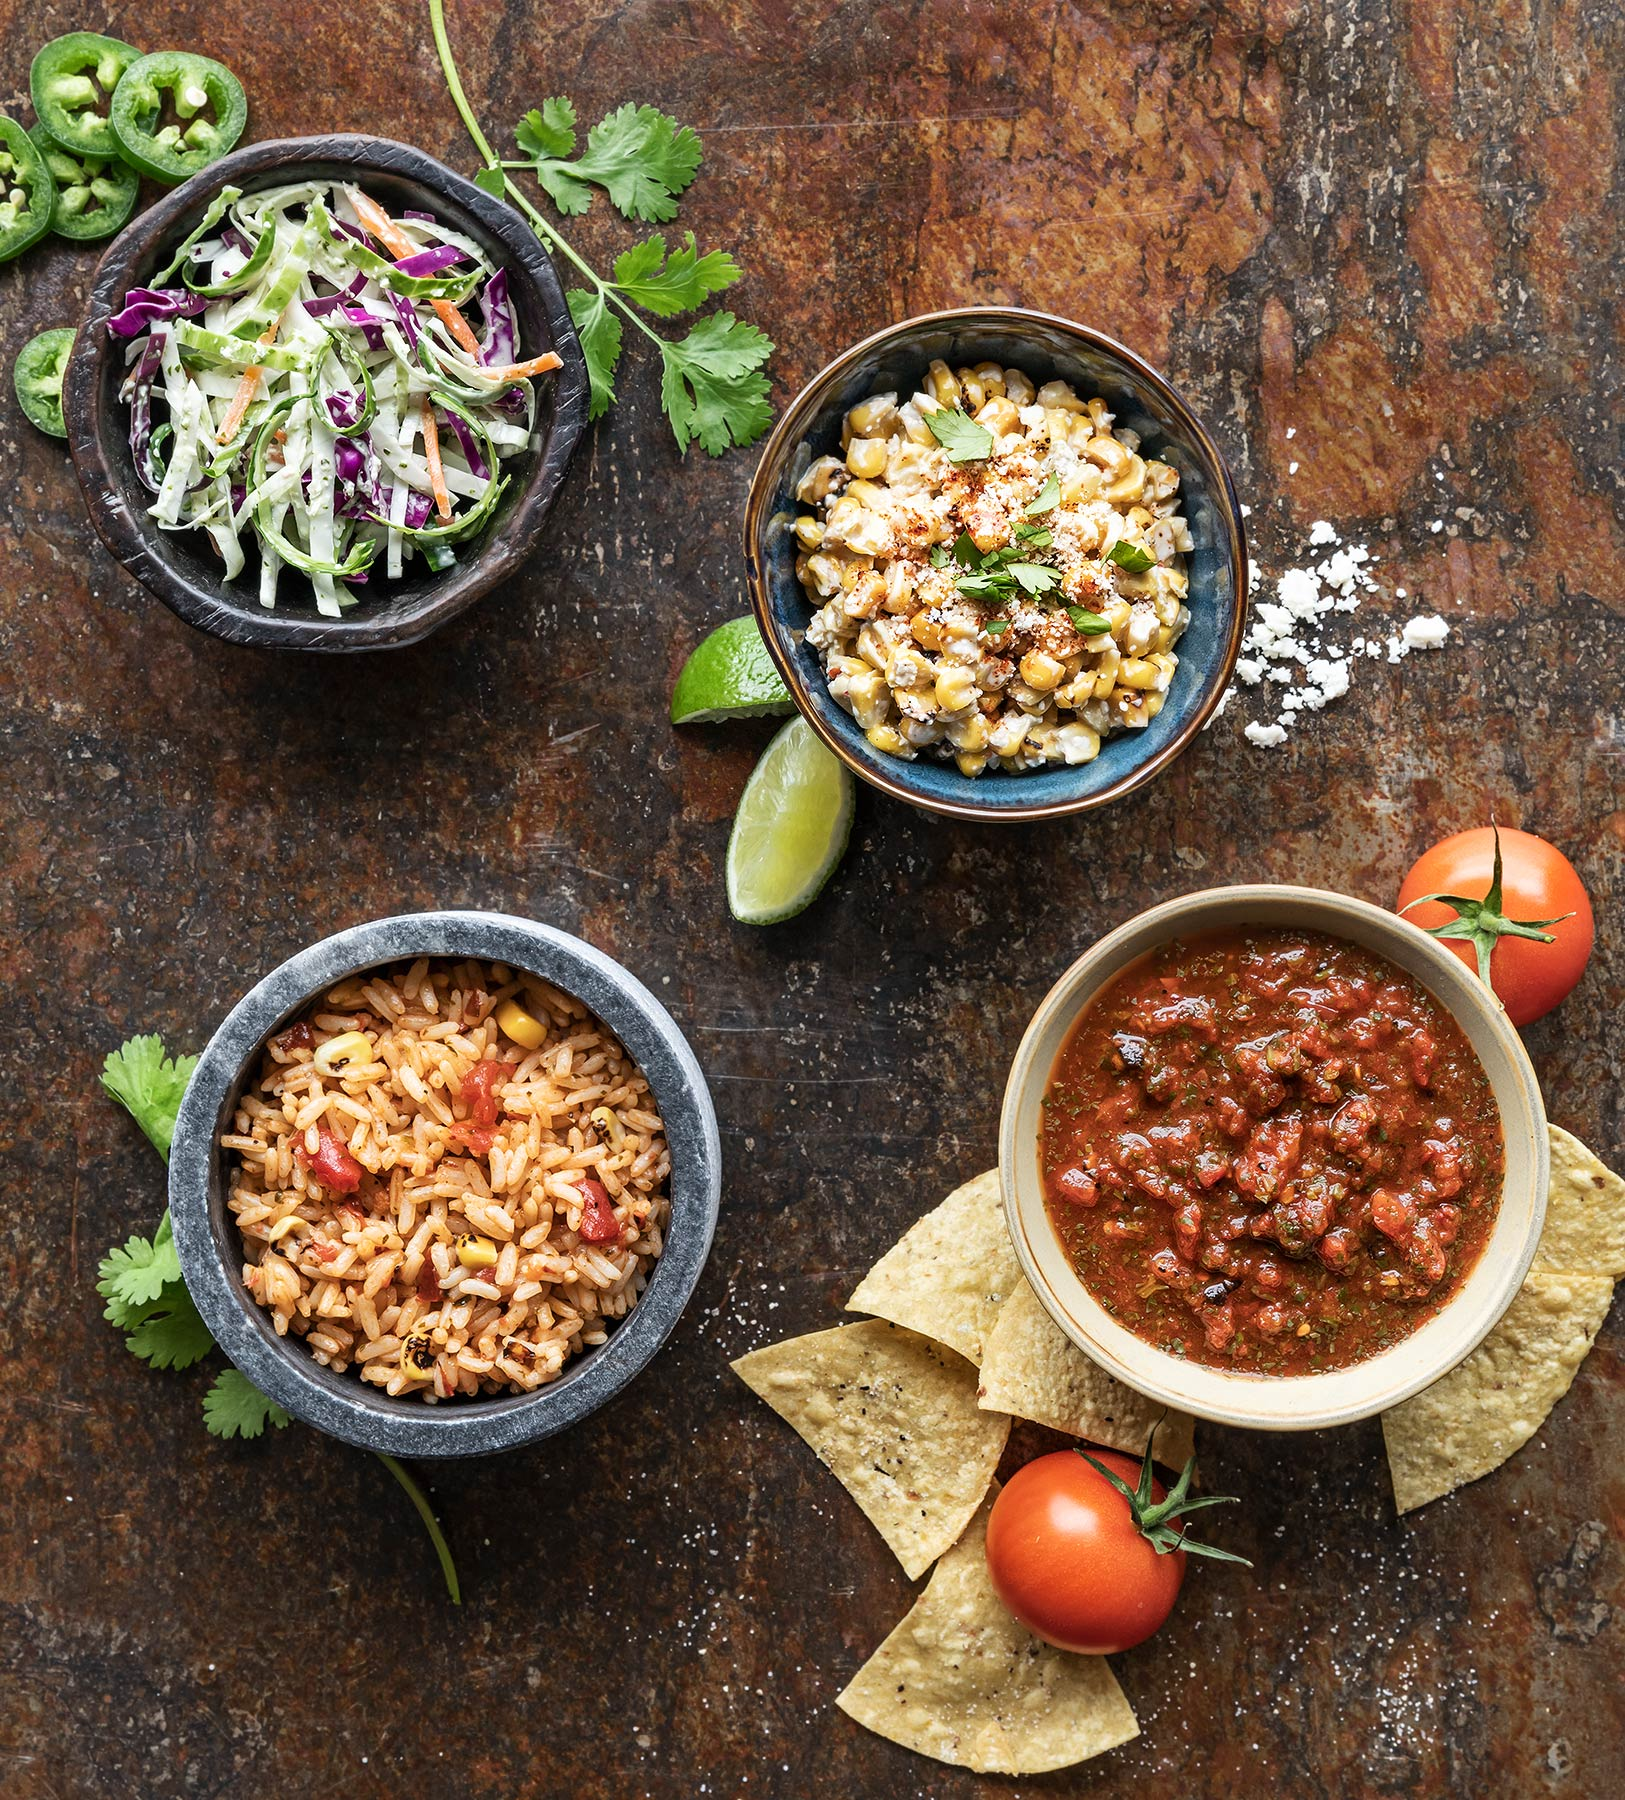 Side bowls of slaw, Elotes, red rice, chips & salsa on rustic metal